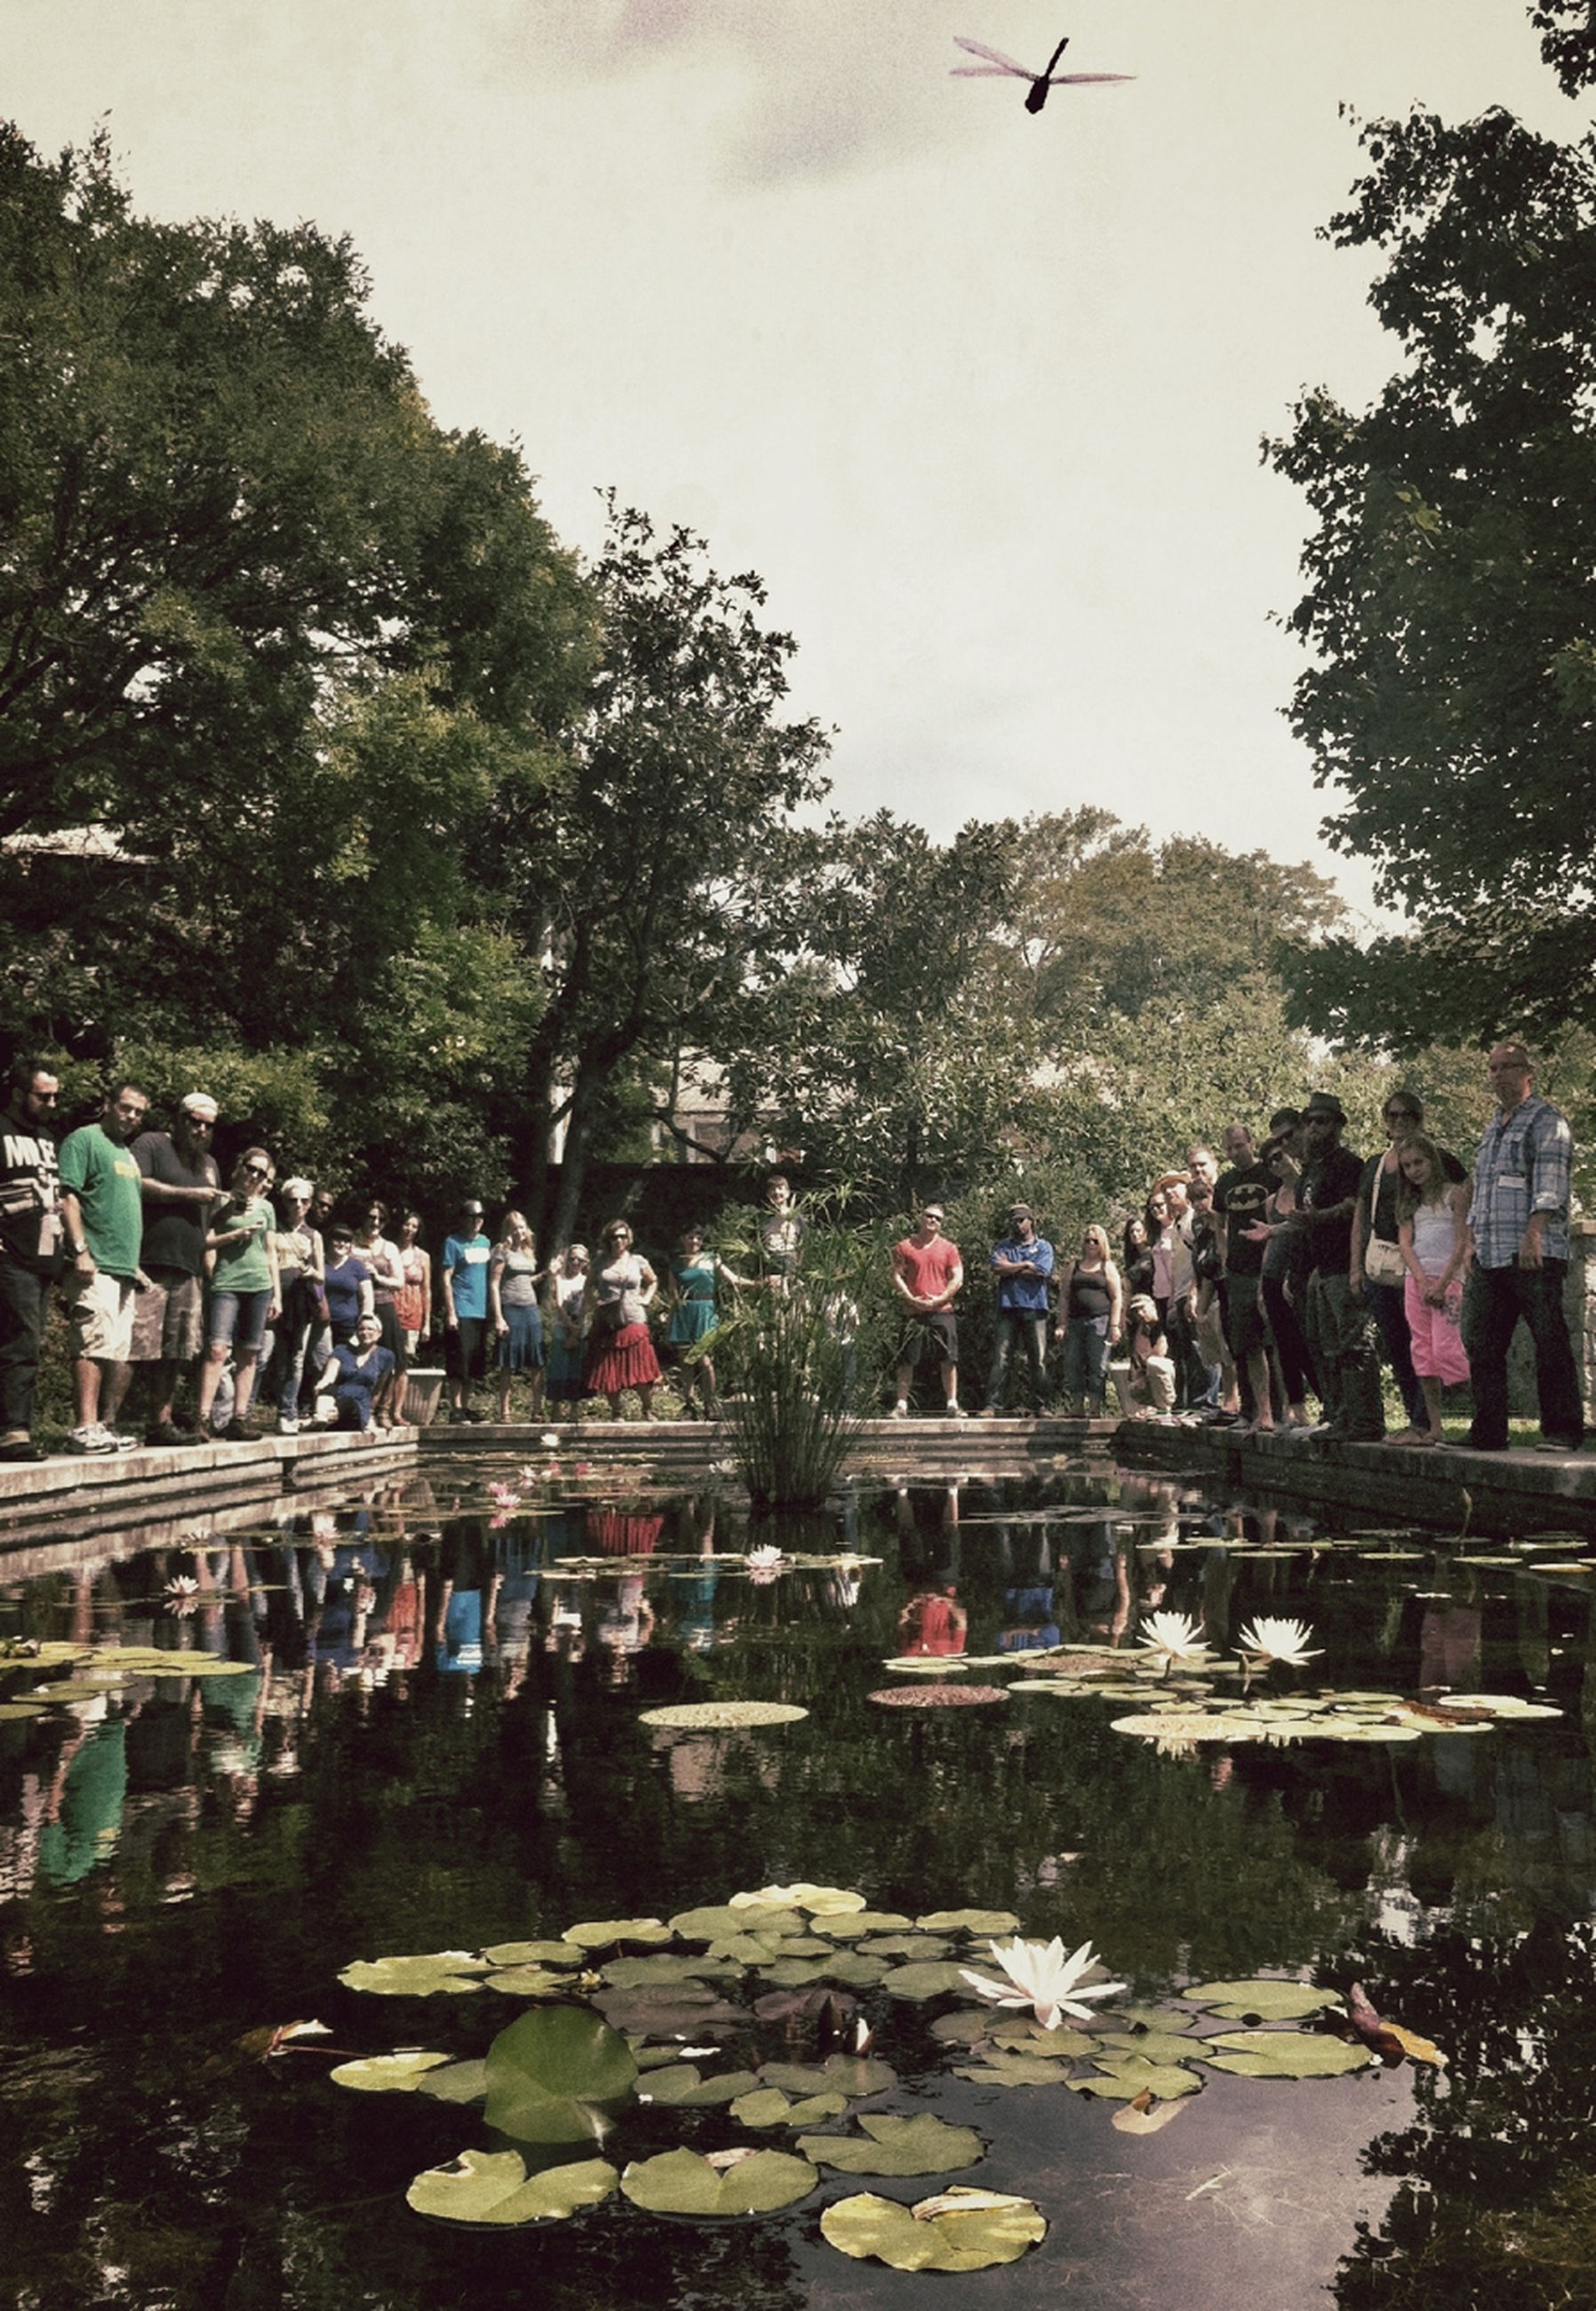 water, tree, bird, lake, reflection, large group of people, animal themes, person, animals in the wild, pond, nature, wildlife, river, men, built structure, day, waterfront, flock of birds